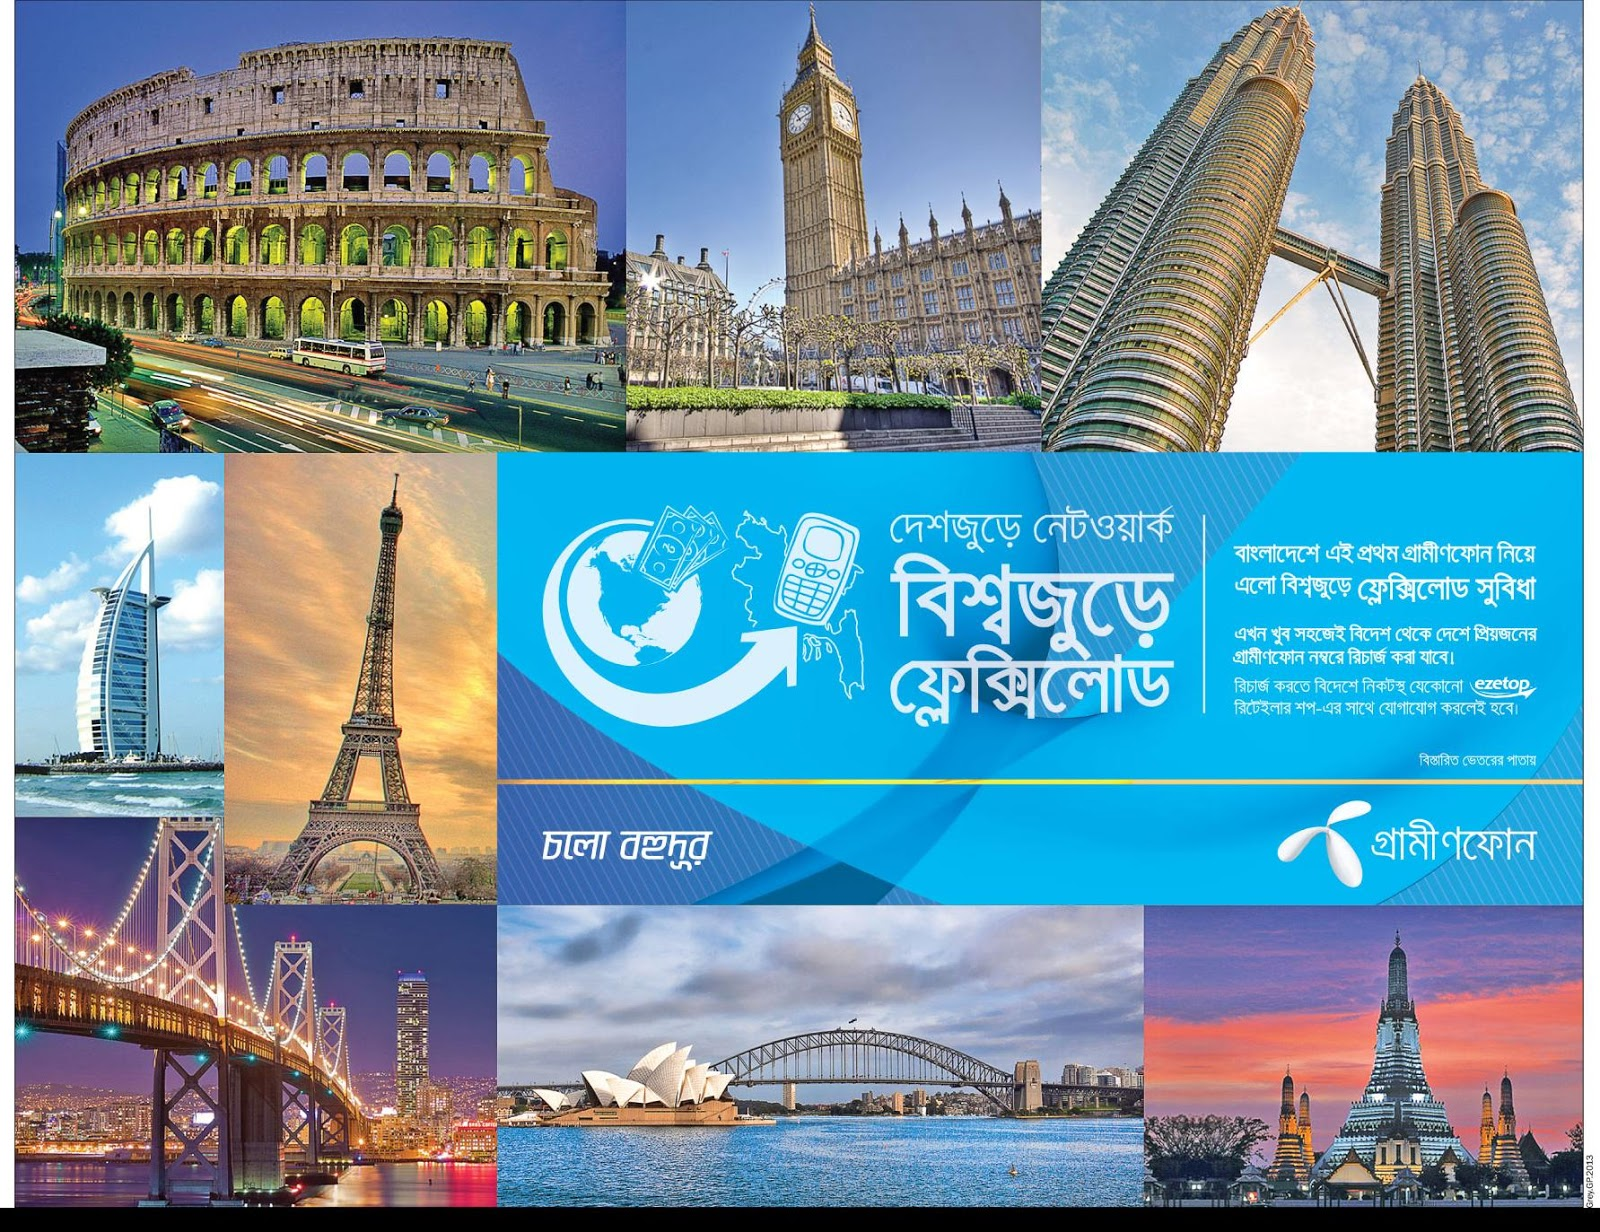 grameenphone International Flexiload service - bdMati